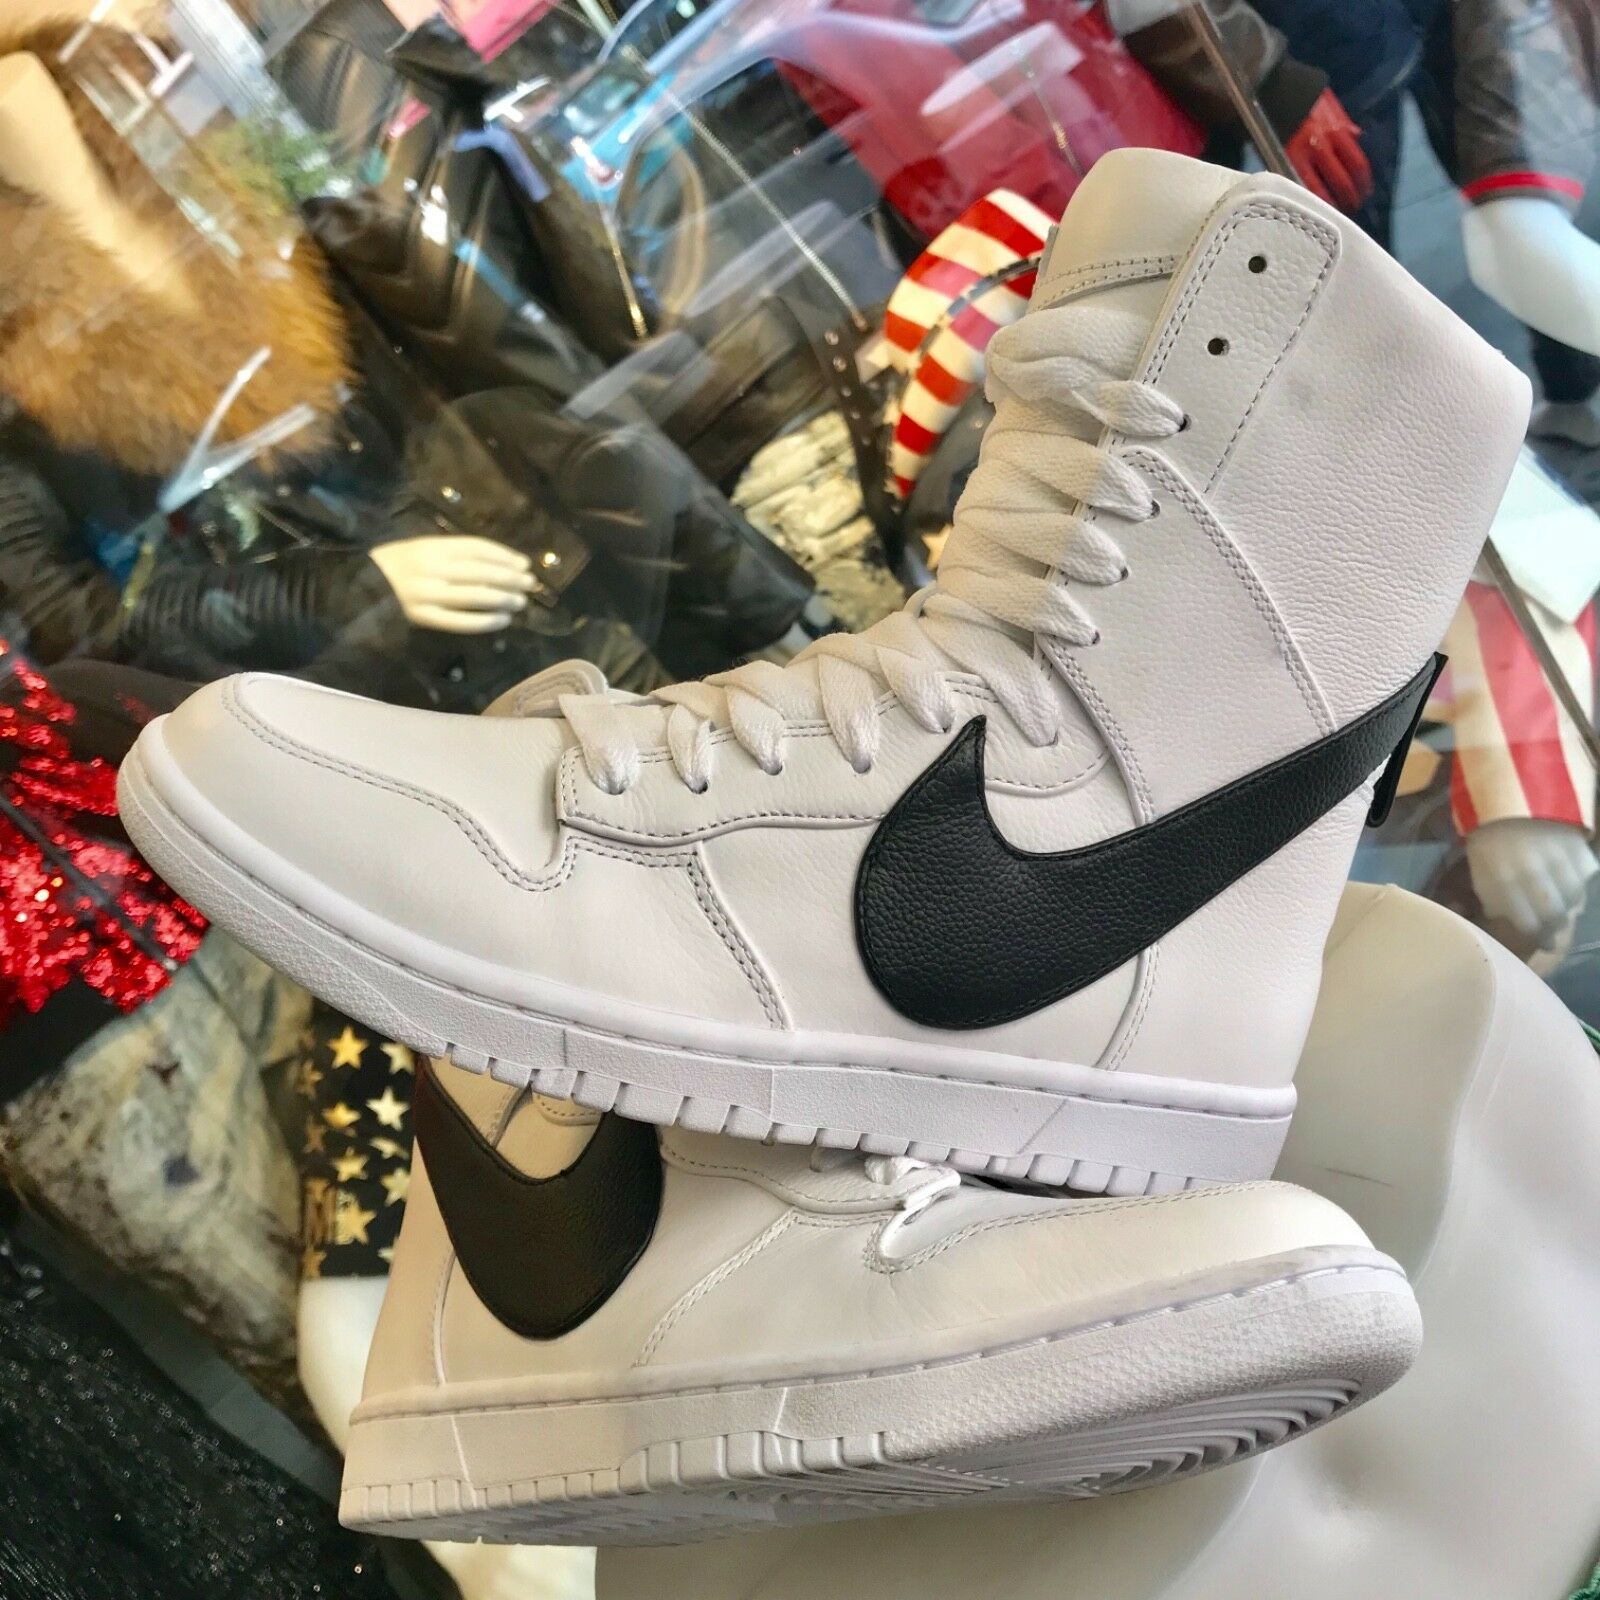 ab3c5ef05 Mr Ms Men s Men s Men s Nike White Black Men s Fashion Sneakers High  quality and